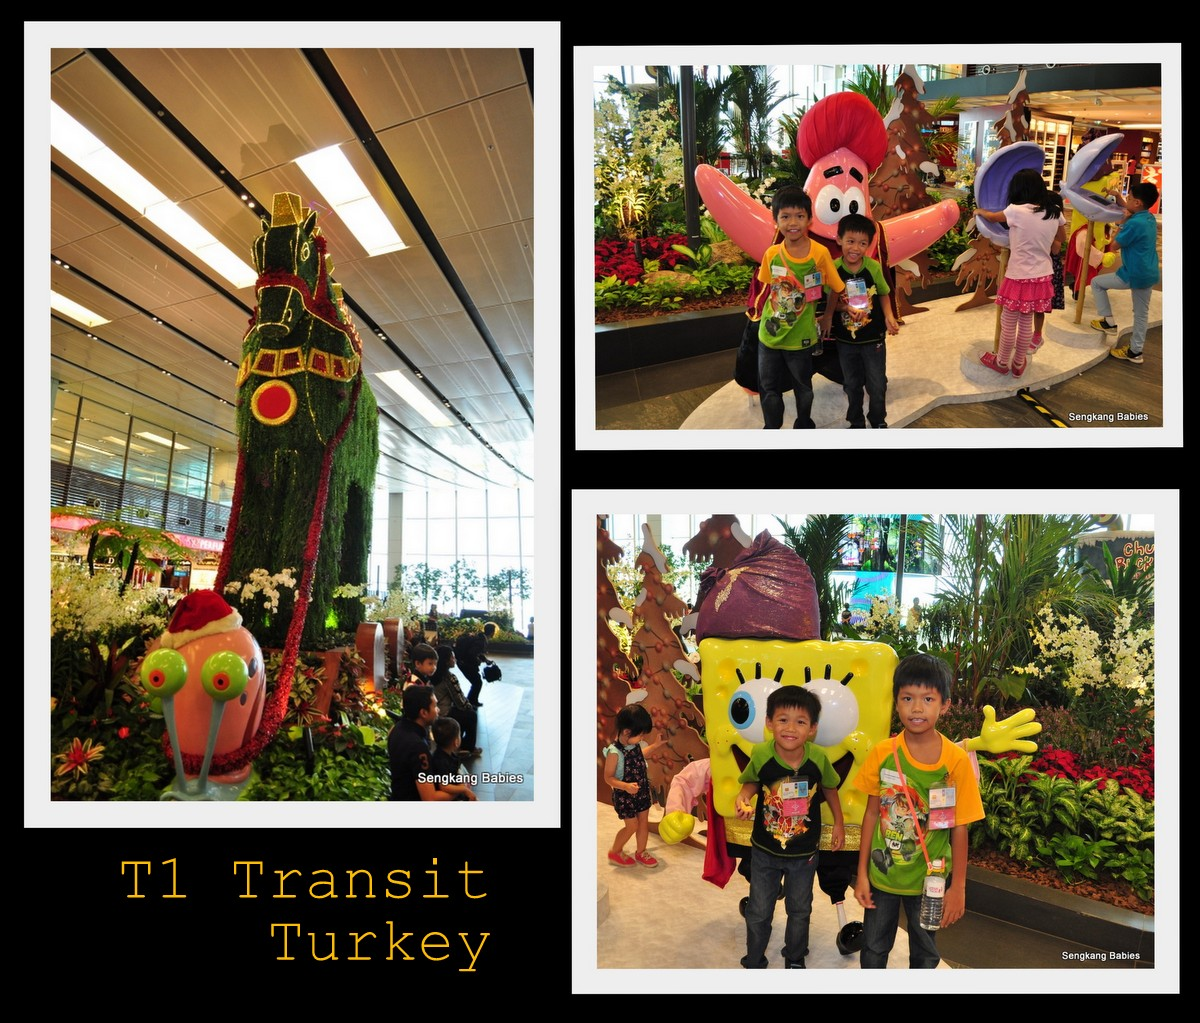 Changi Christmas event, Changi Christmas kids activities, Changi family attractions